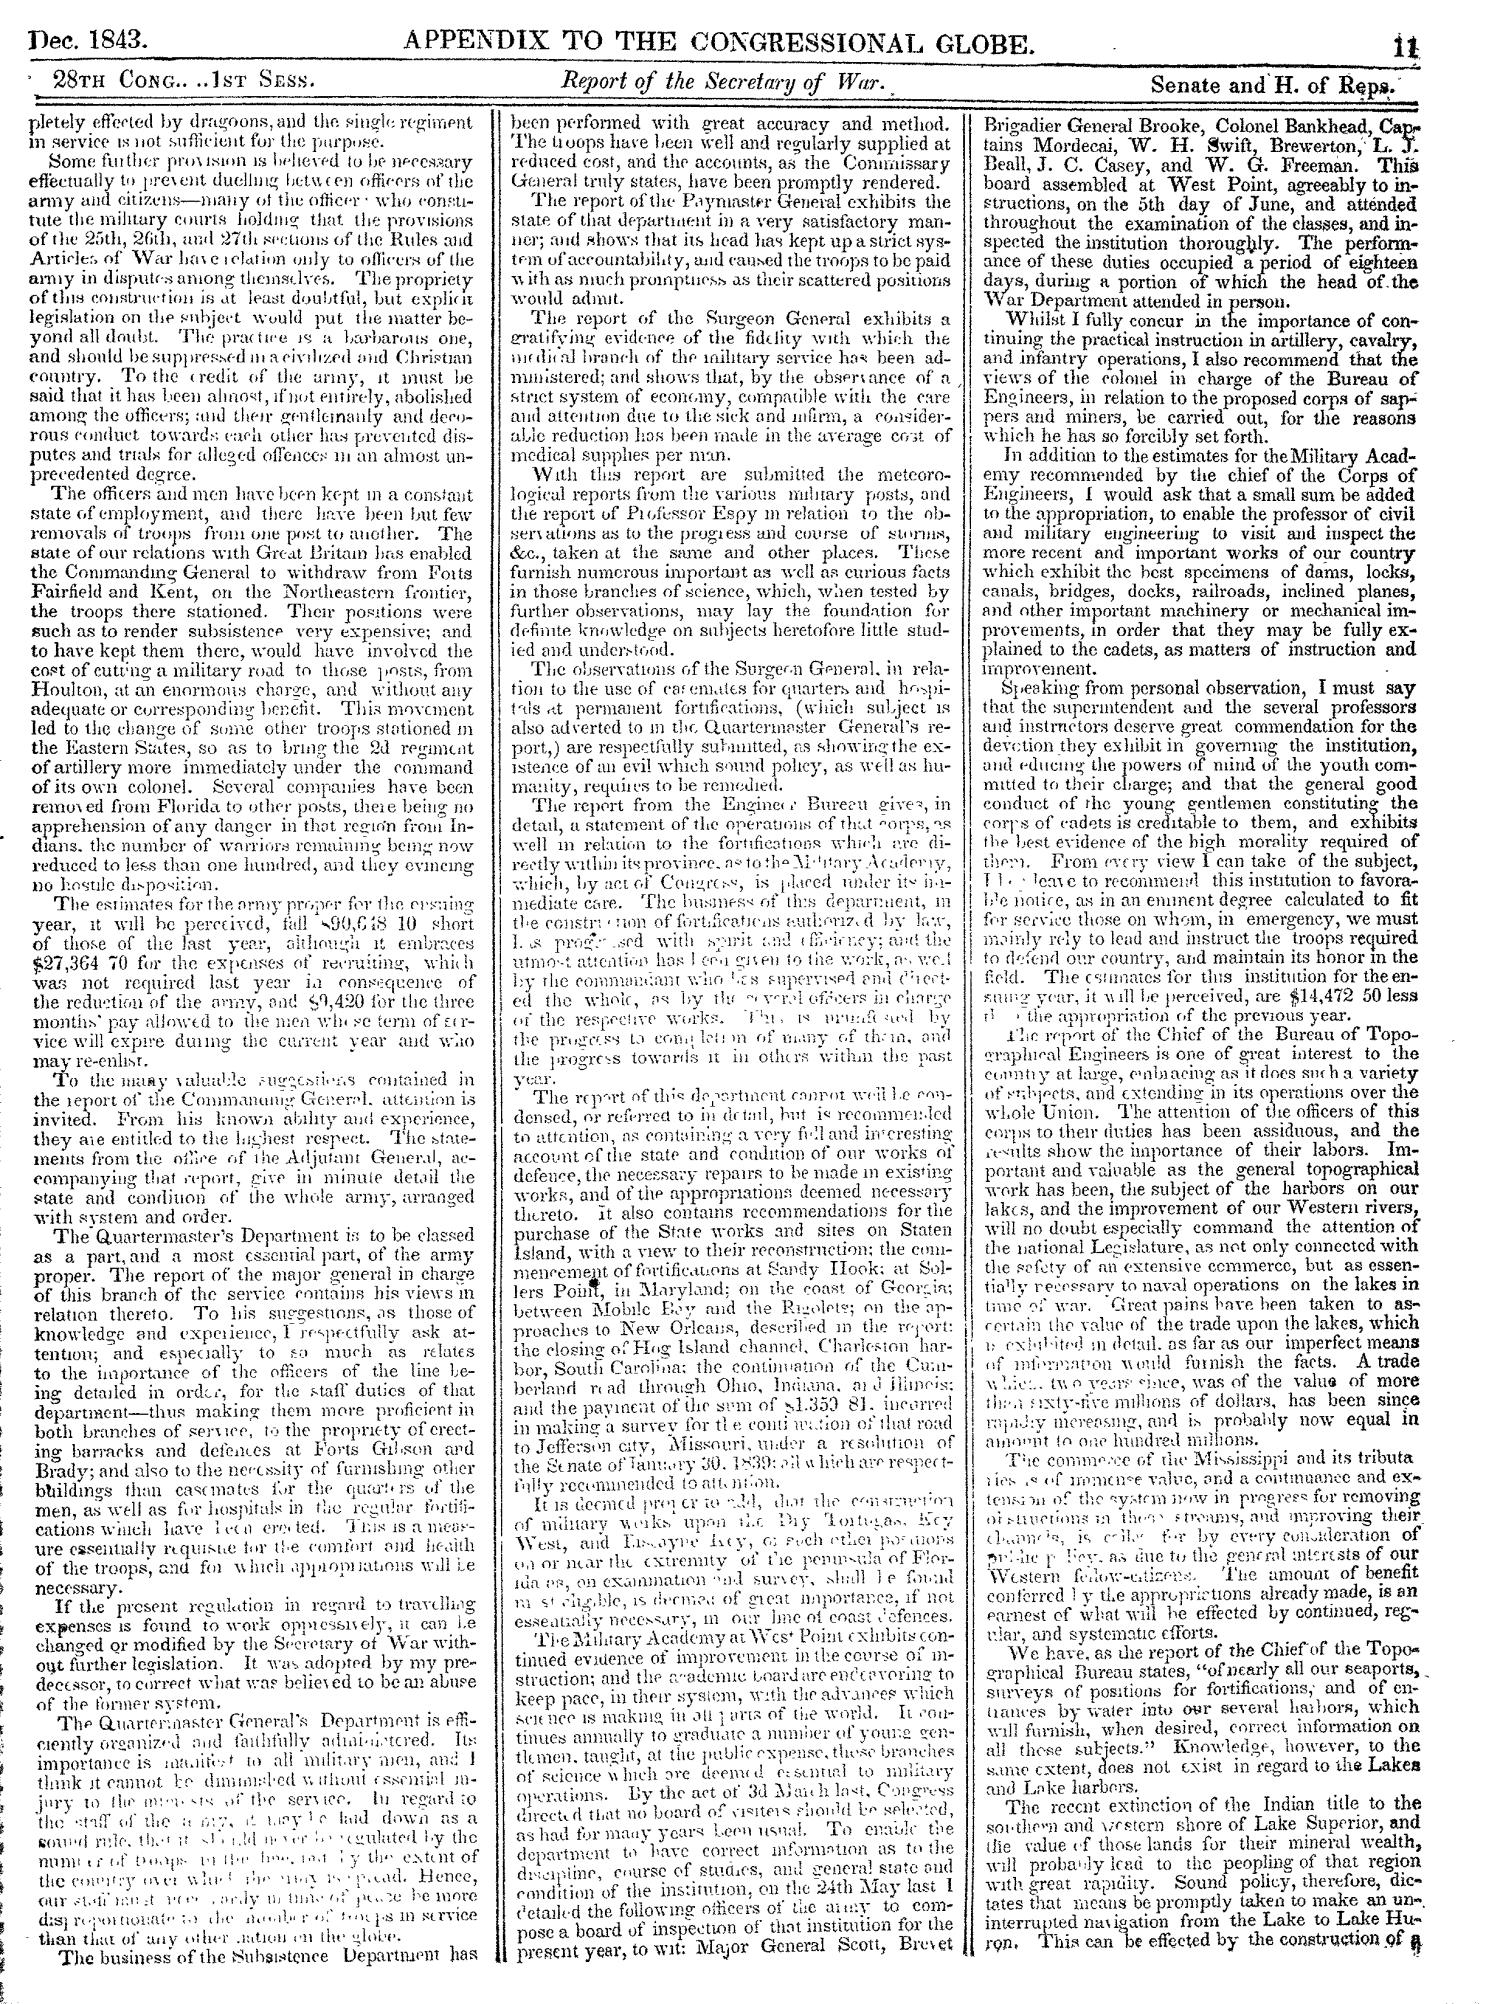 The Congressional Globe, Volume 13, Part 2: Twenty-Eighth Congress, First Session                                                                                                      11